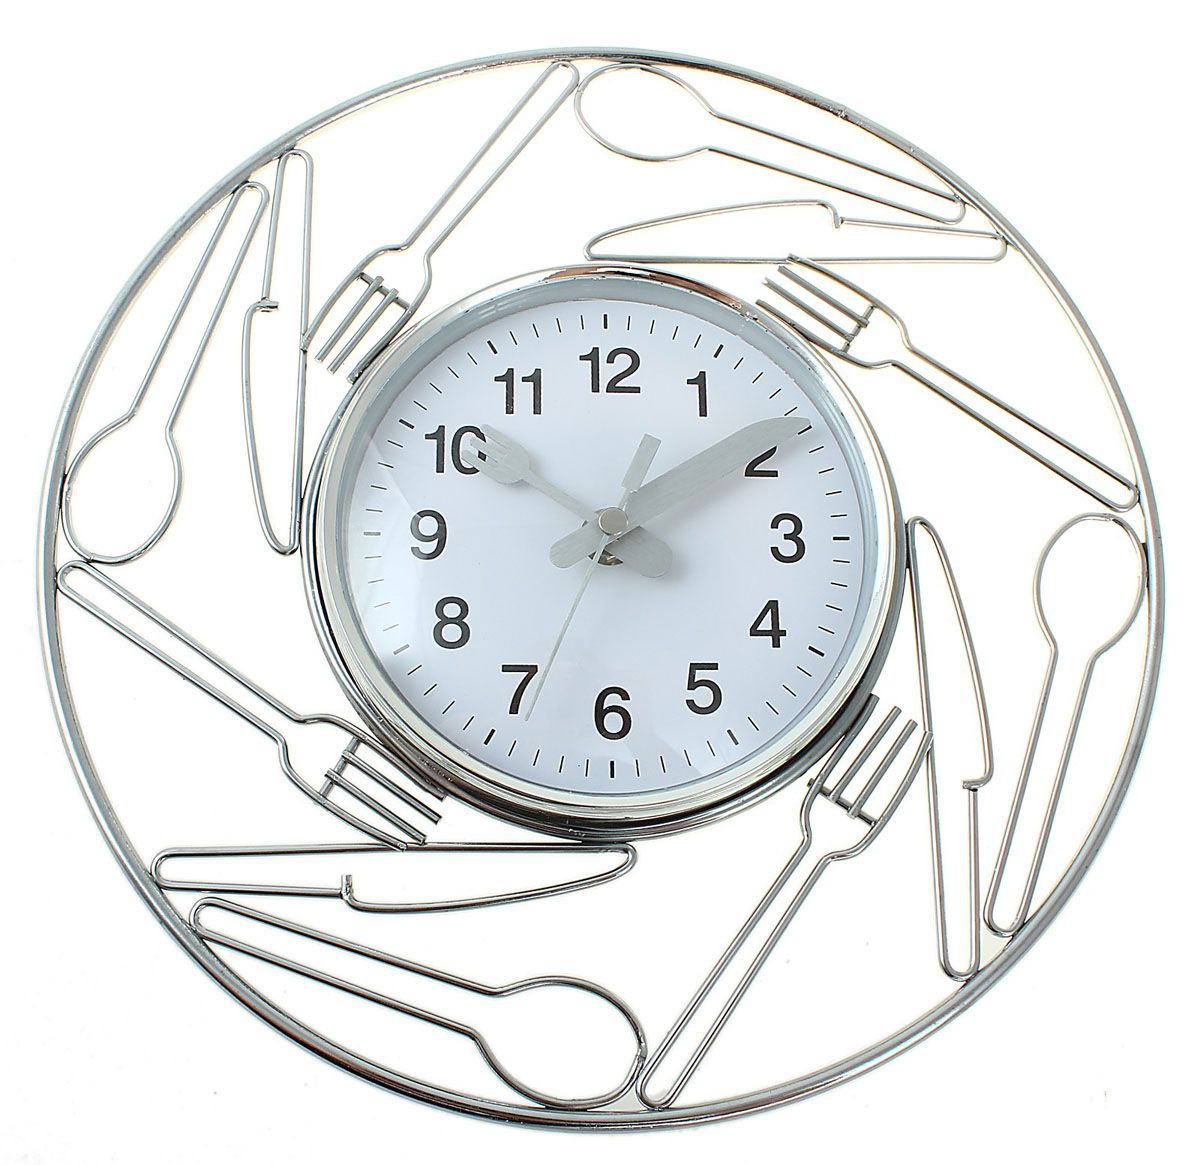 Modern Kitchen Clocks 24 Beautiful Kitchen Wall Clocks Home Decoration And